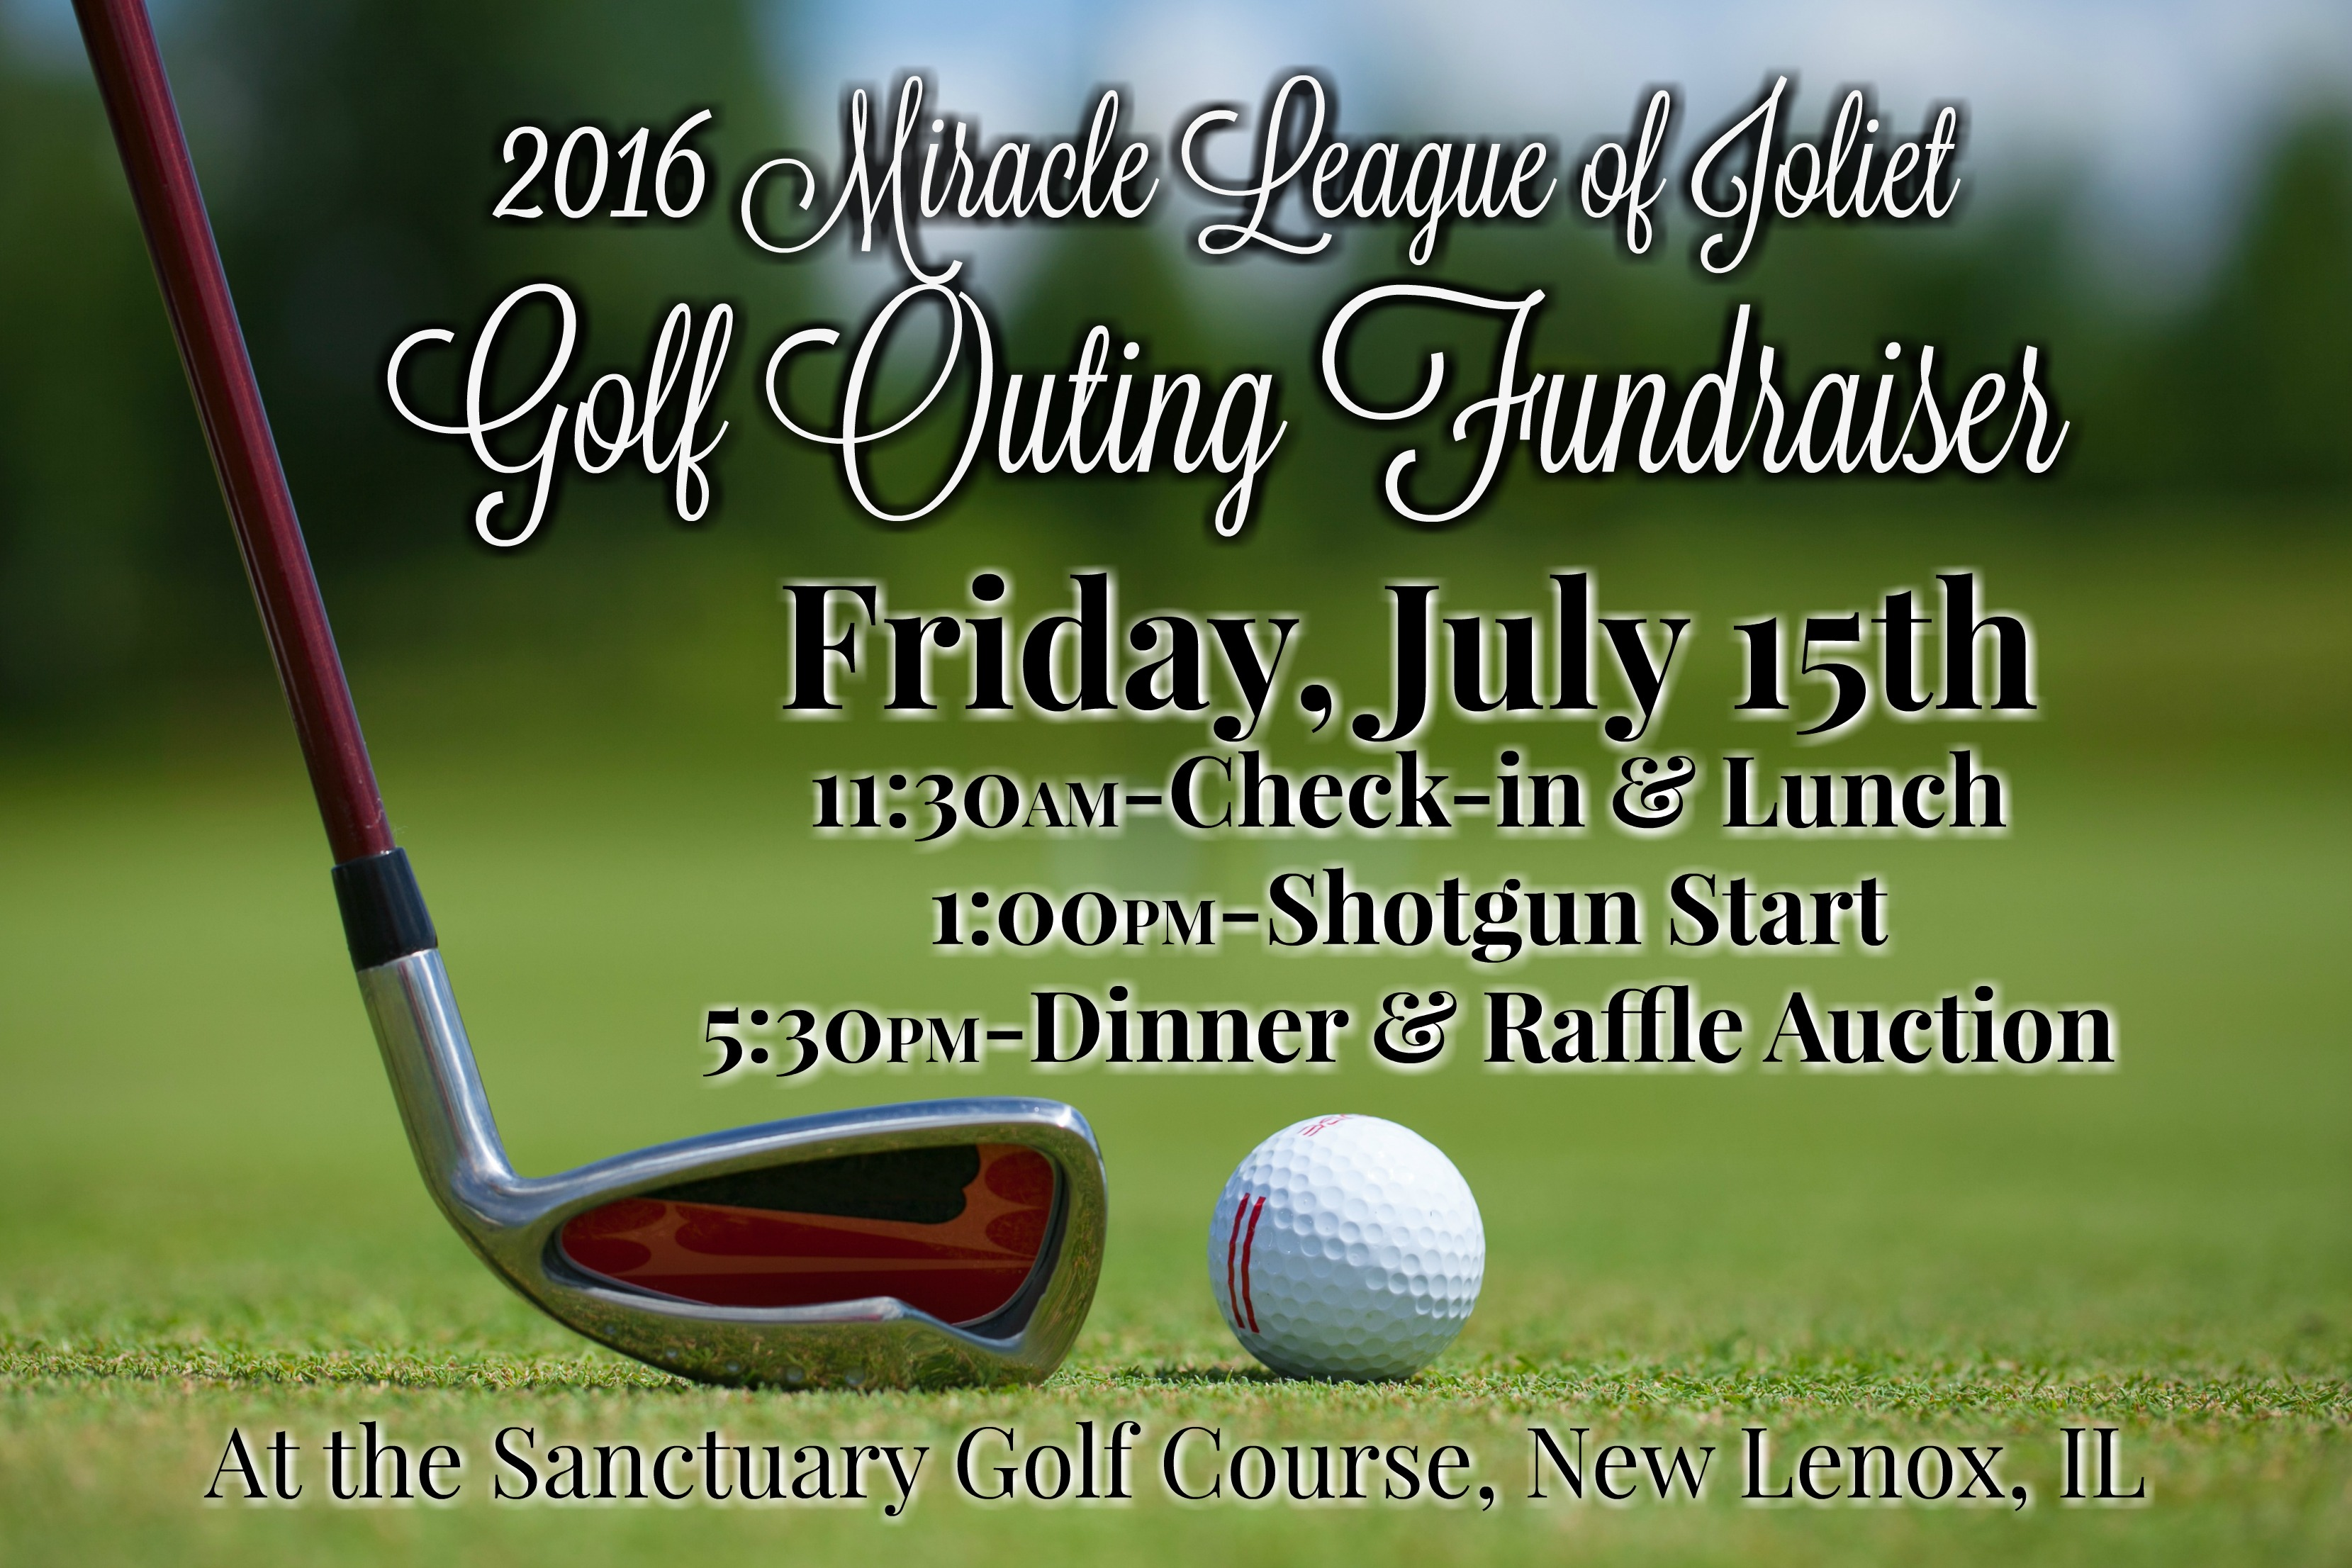 Golf Outing Fundraiser-July 15th, 2016